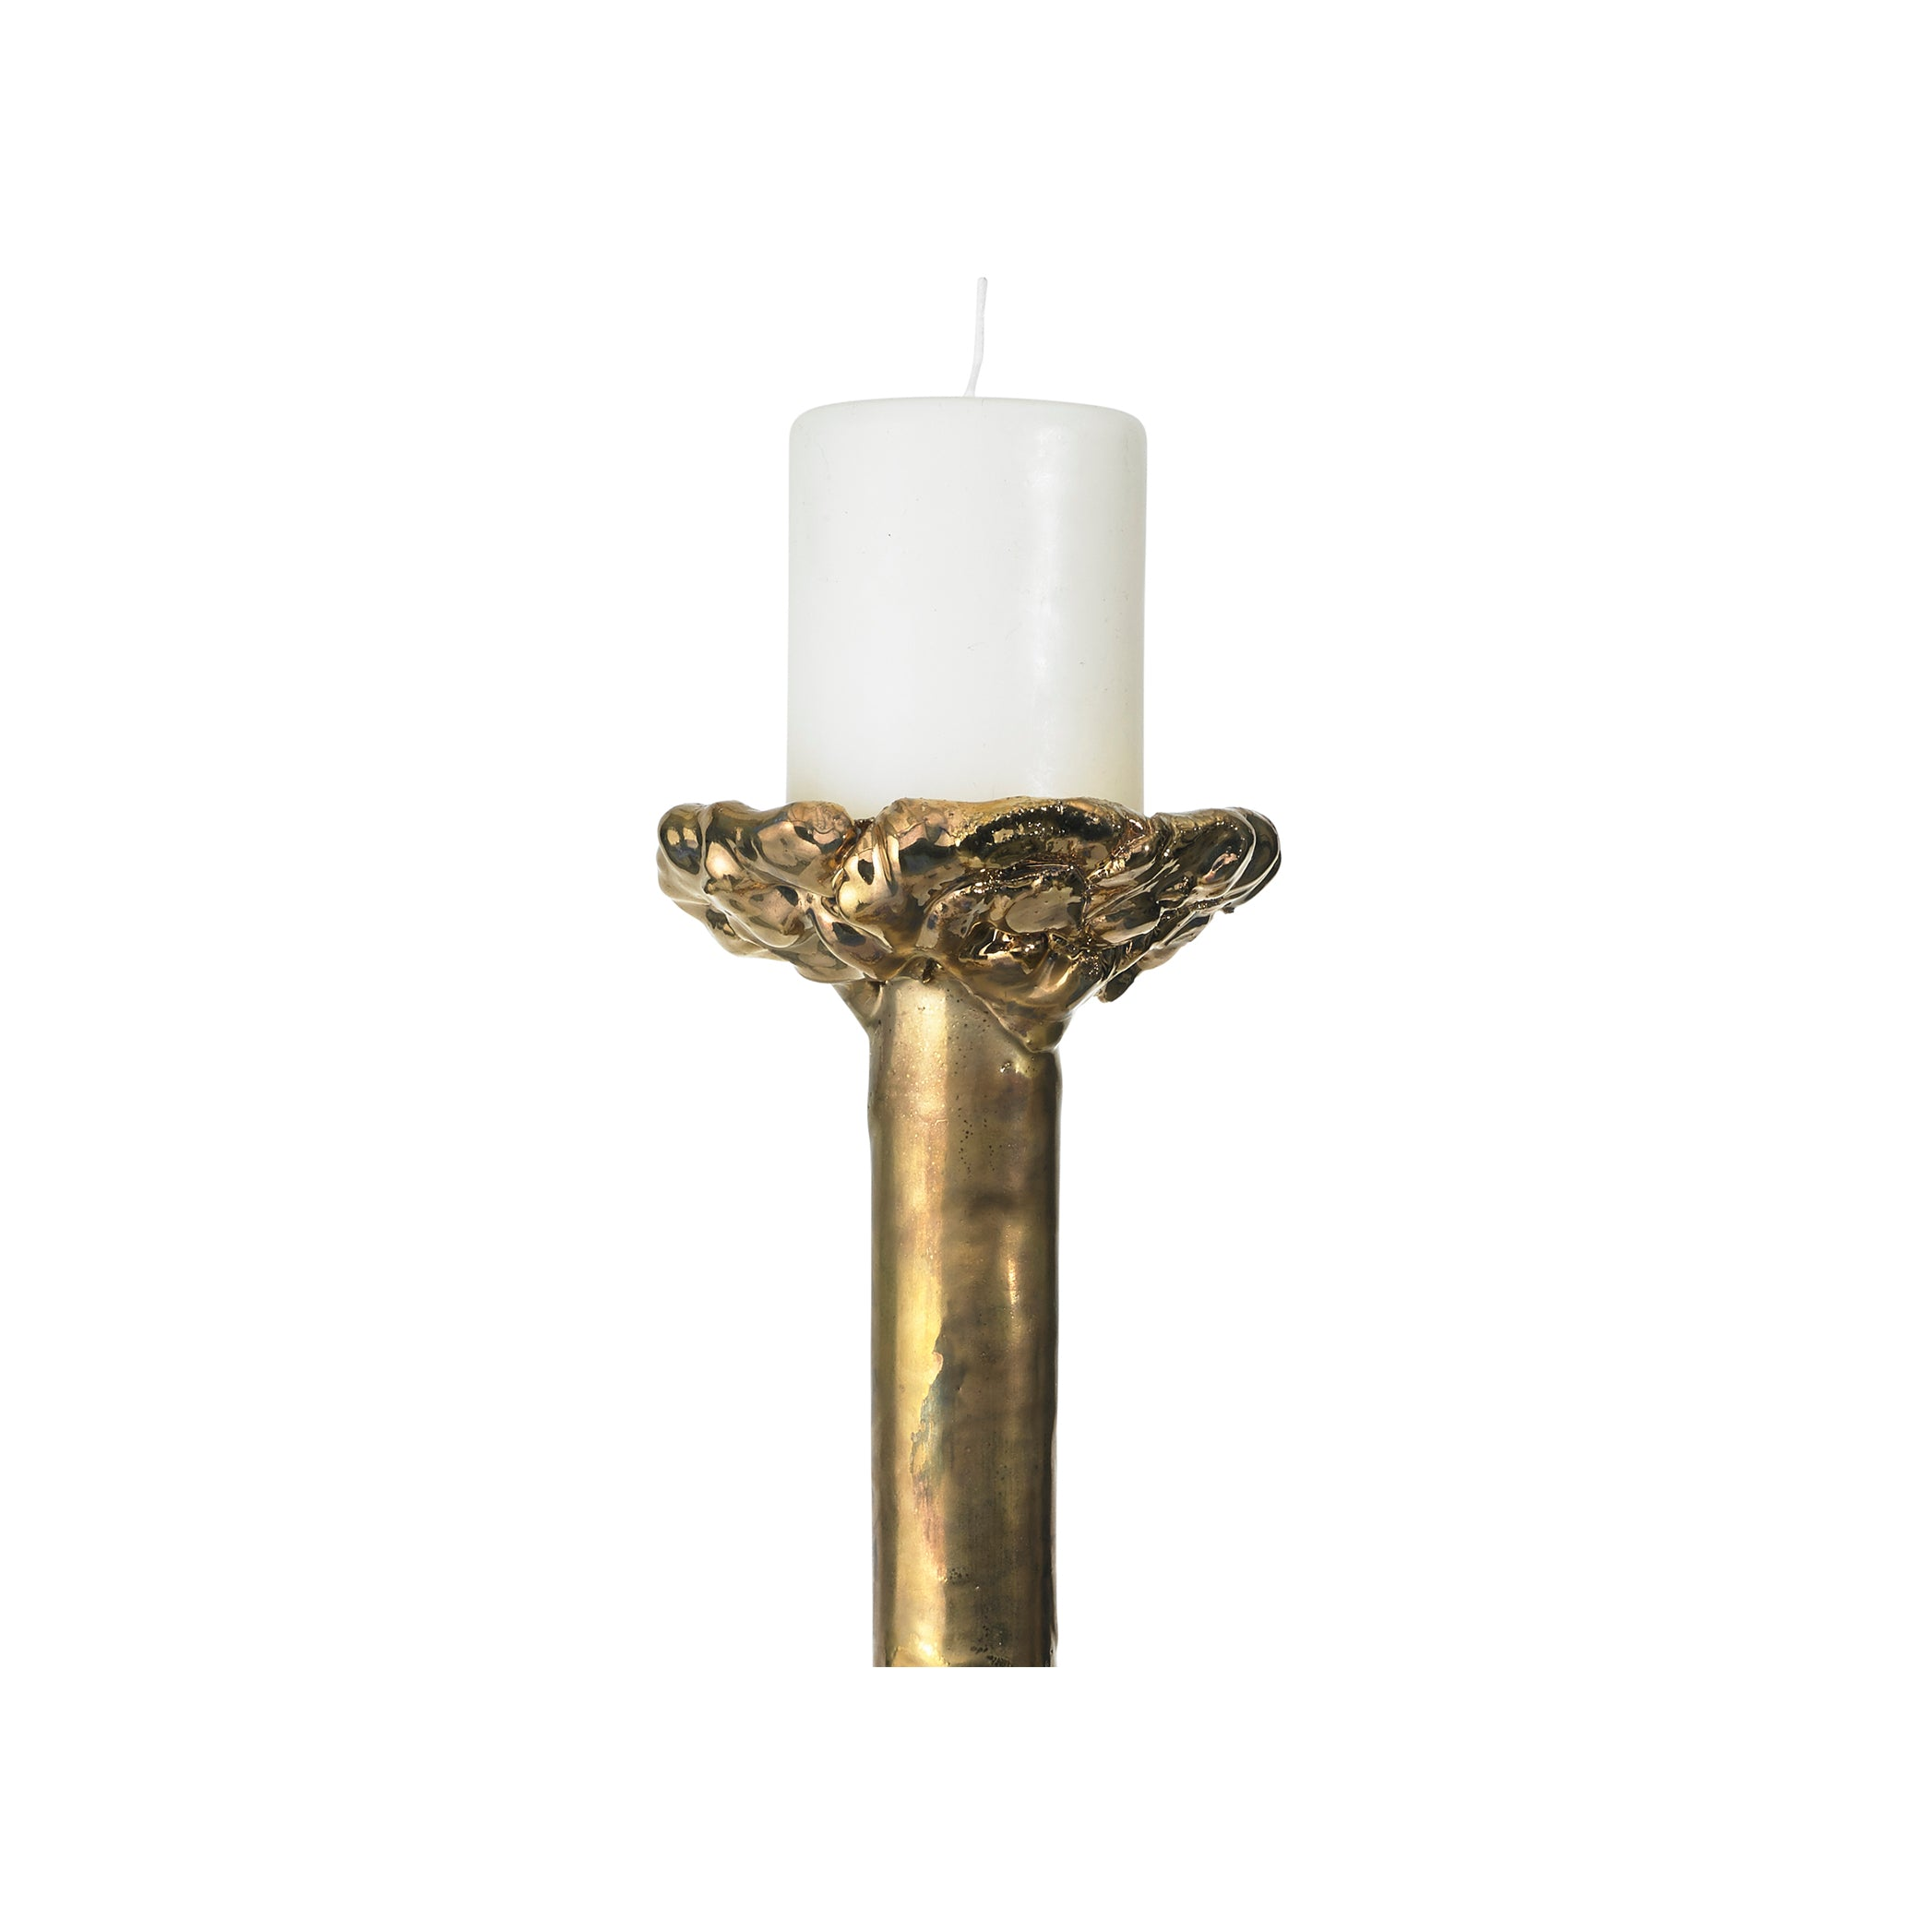 Babylon Ceramic Candlestick in Gold